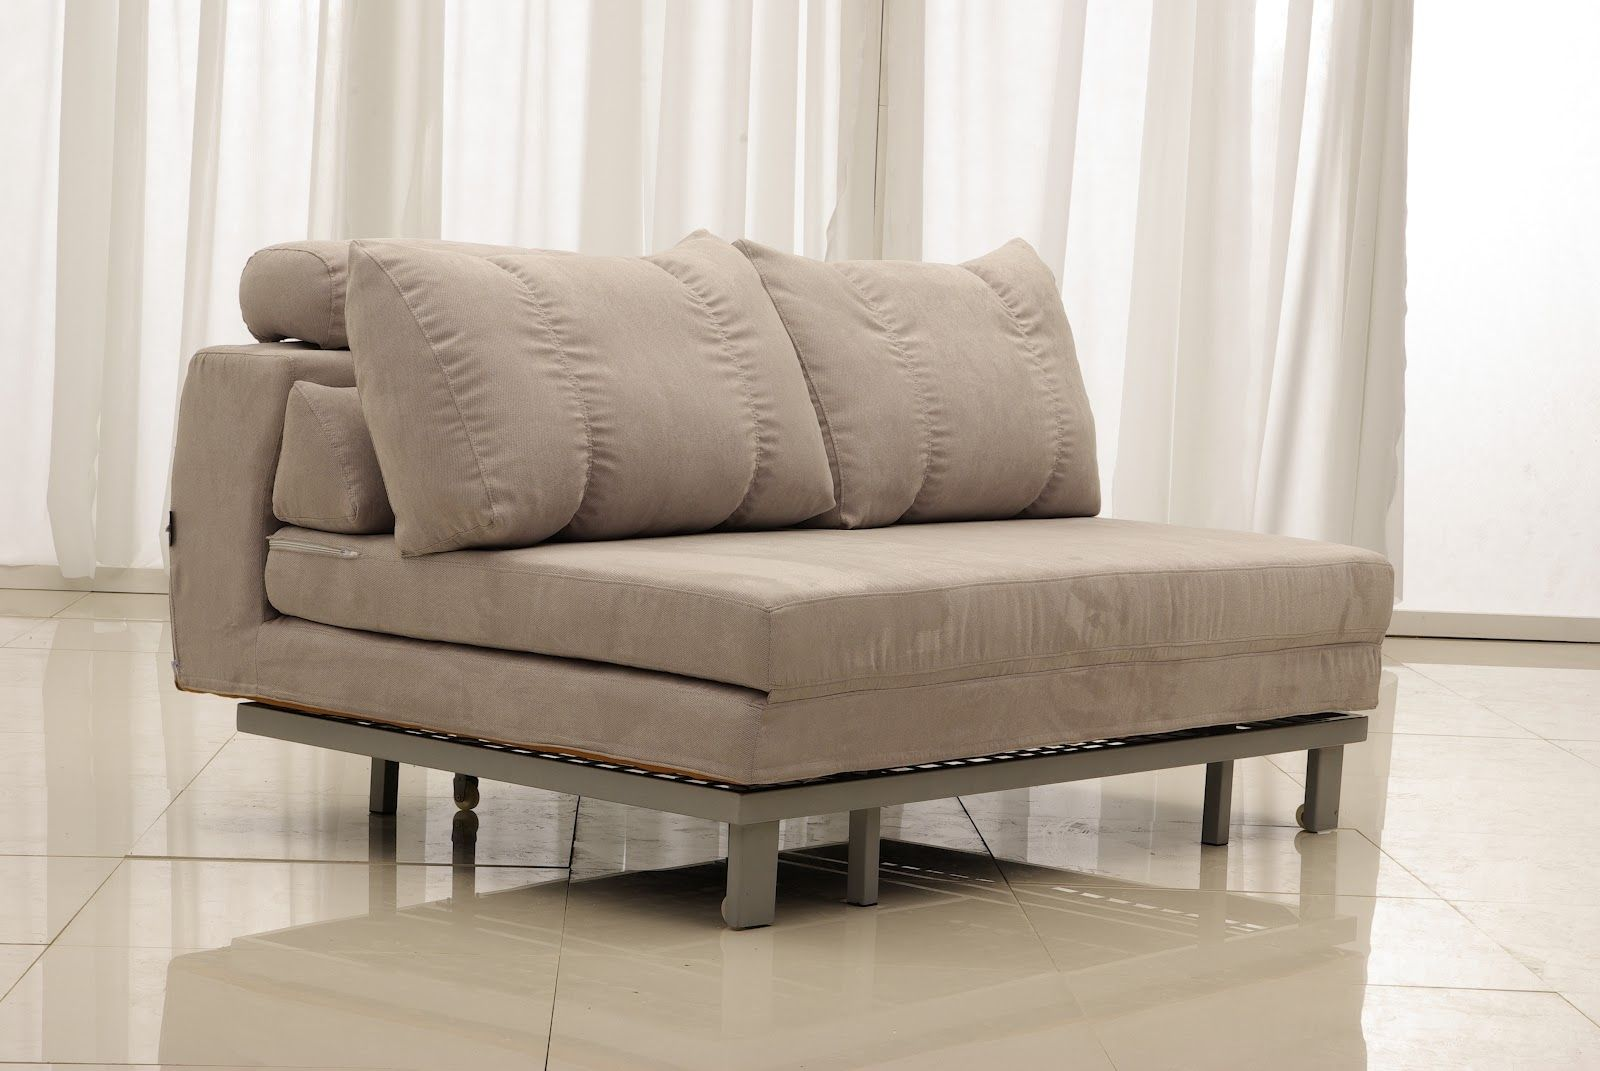 Furniture Terrific Most Comfortable Grey Sofa Beds With Double Pillow Also Curtain And Shining Floor Ideas Bed